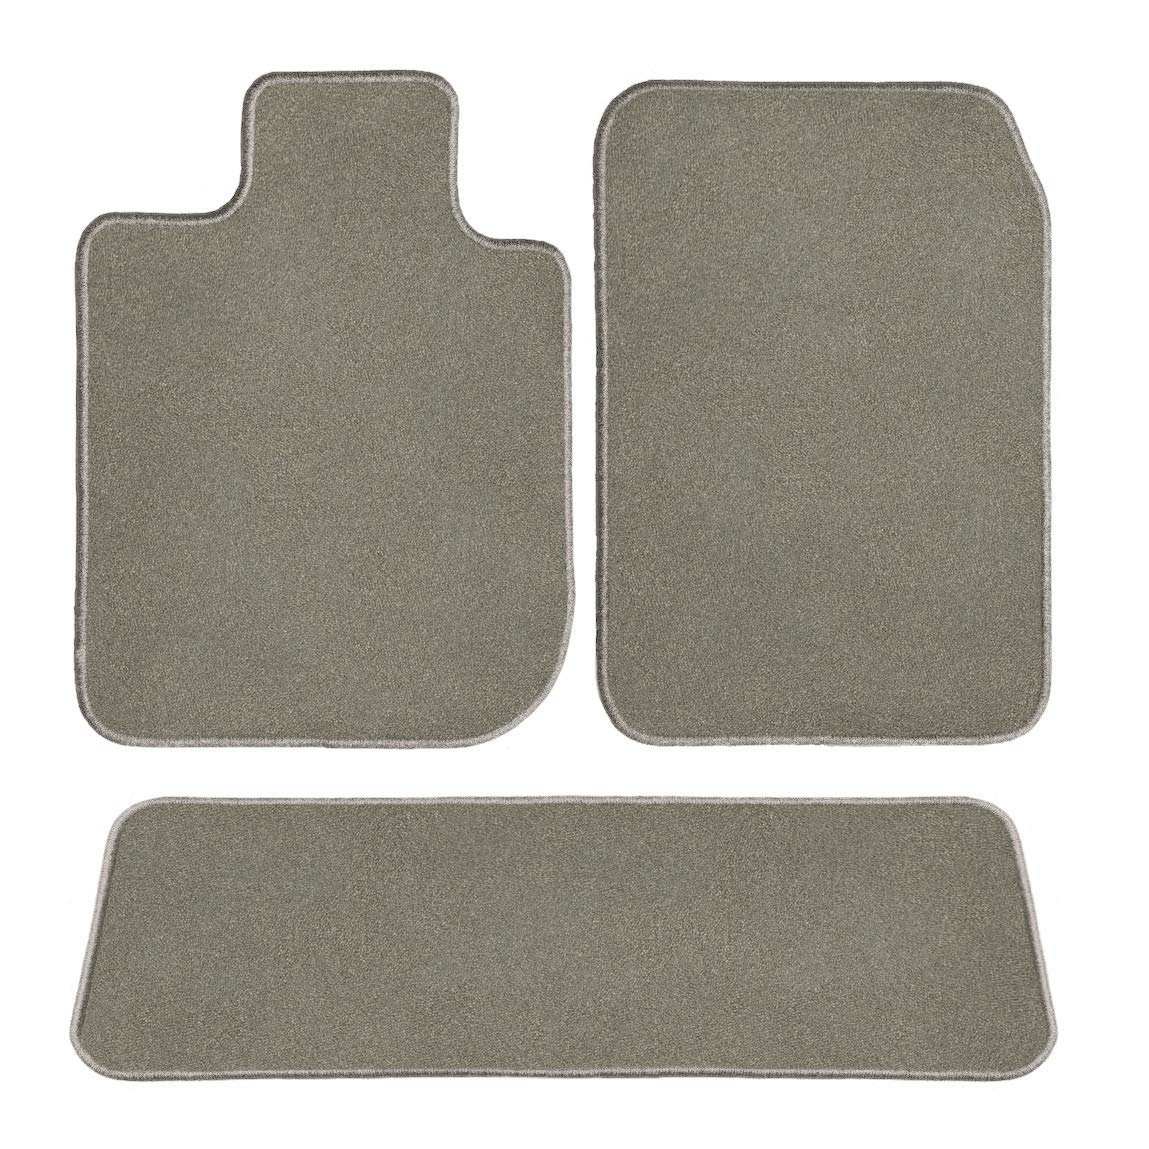 GGBAILEY D60041-S2B-GY Custom Fit Car Mats for 2017 2018 Chrysler Pacifica Grey Driver Passenger /& Rear Floor